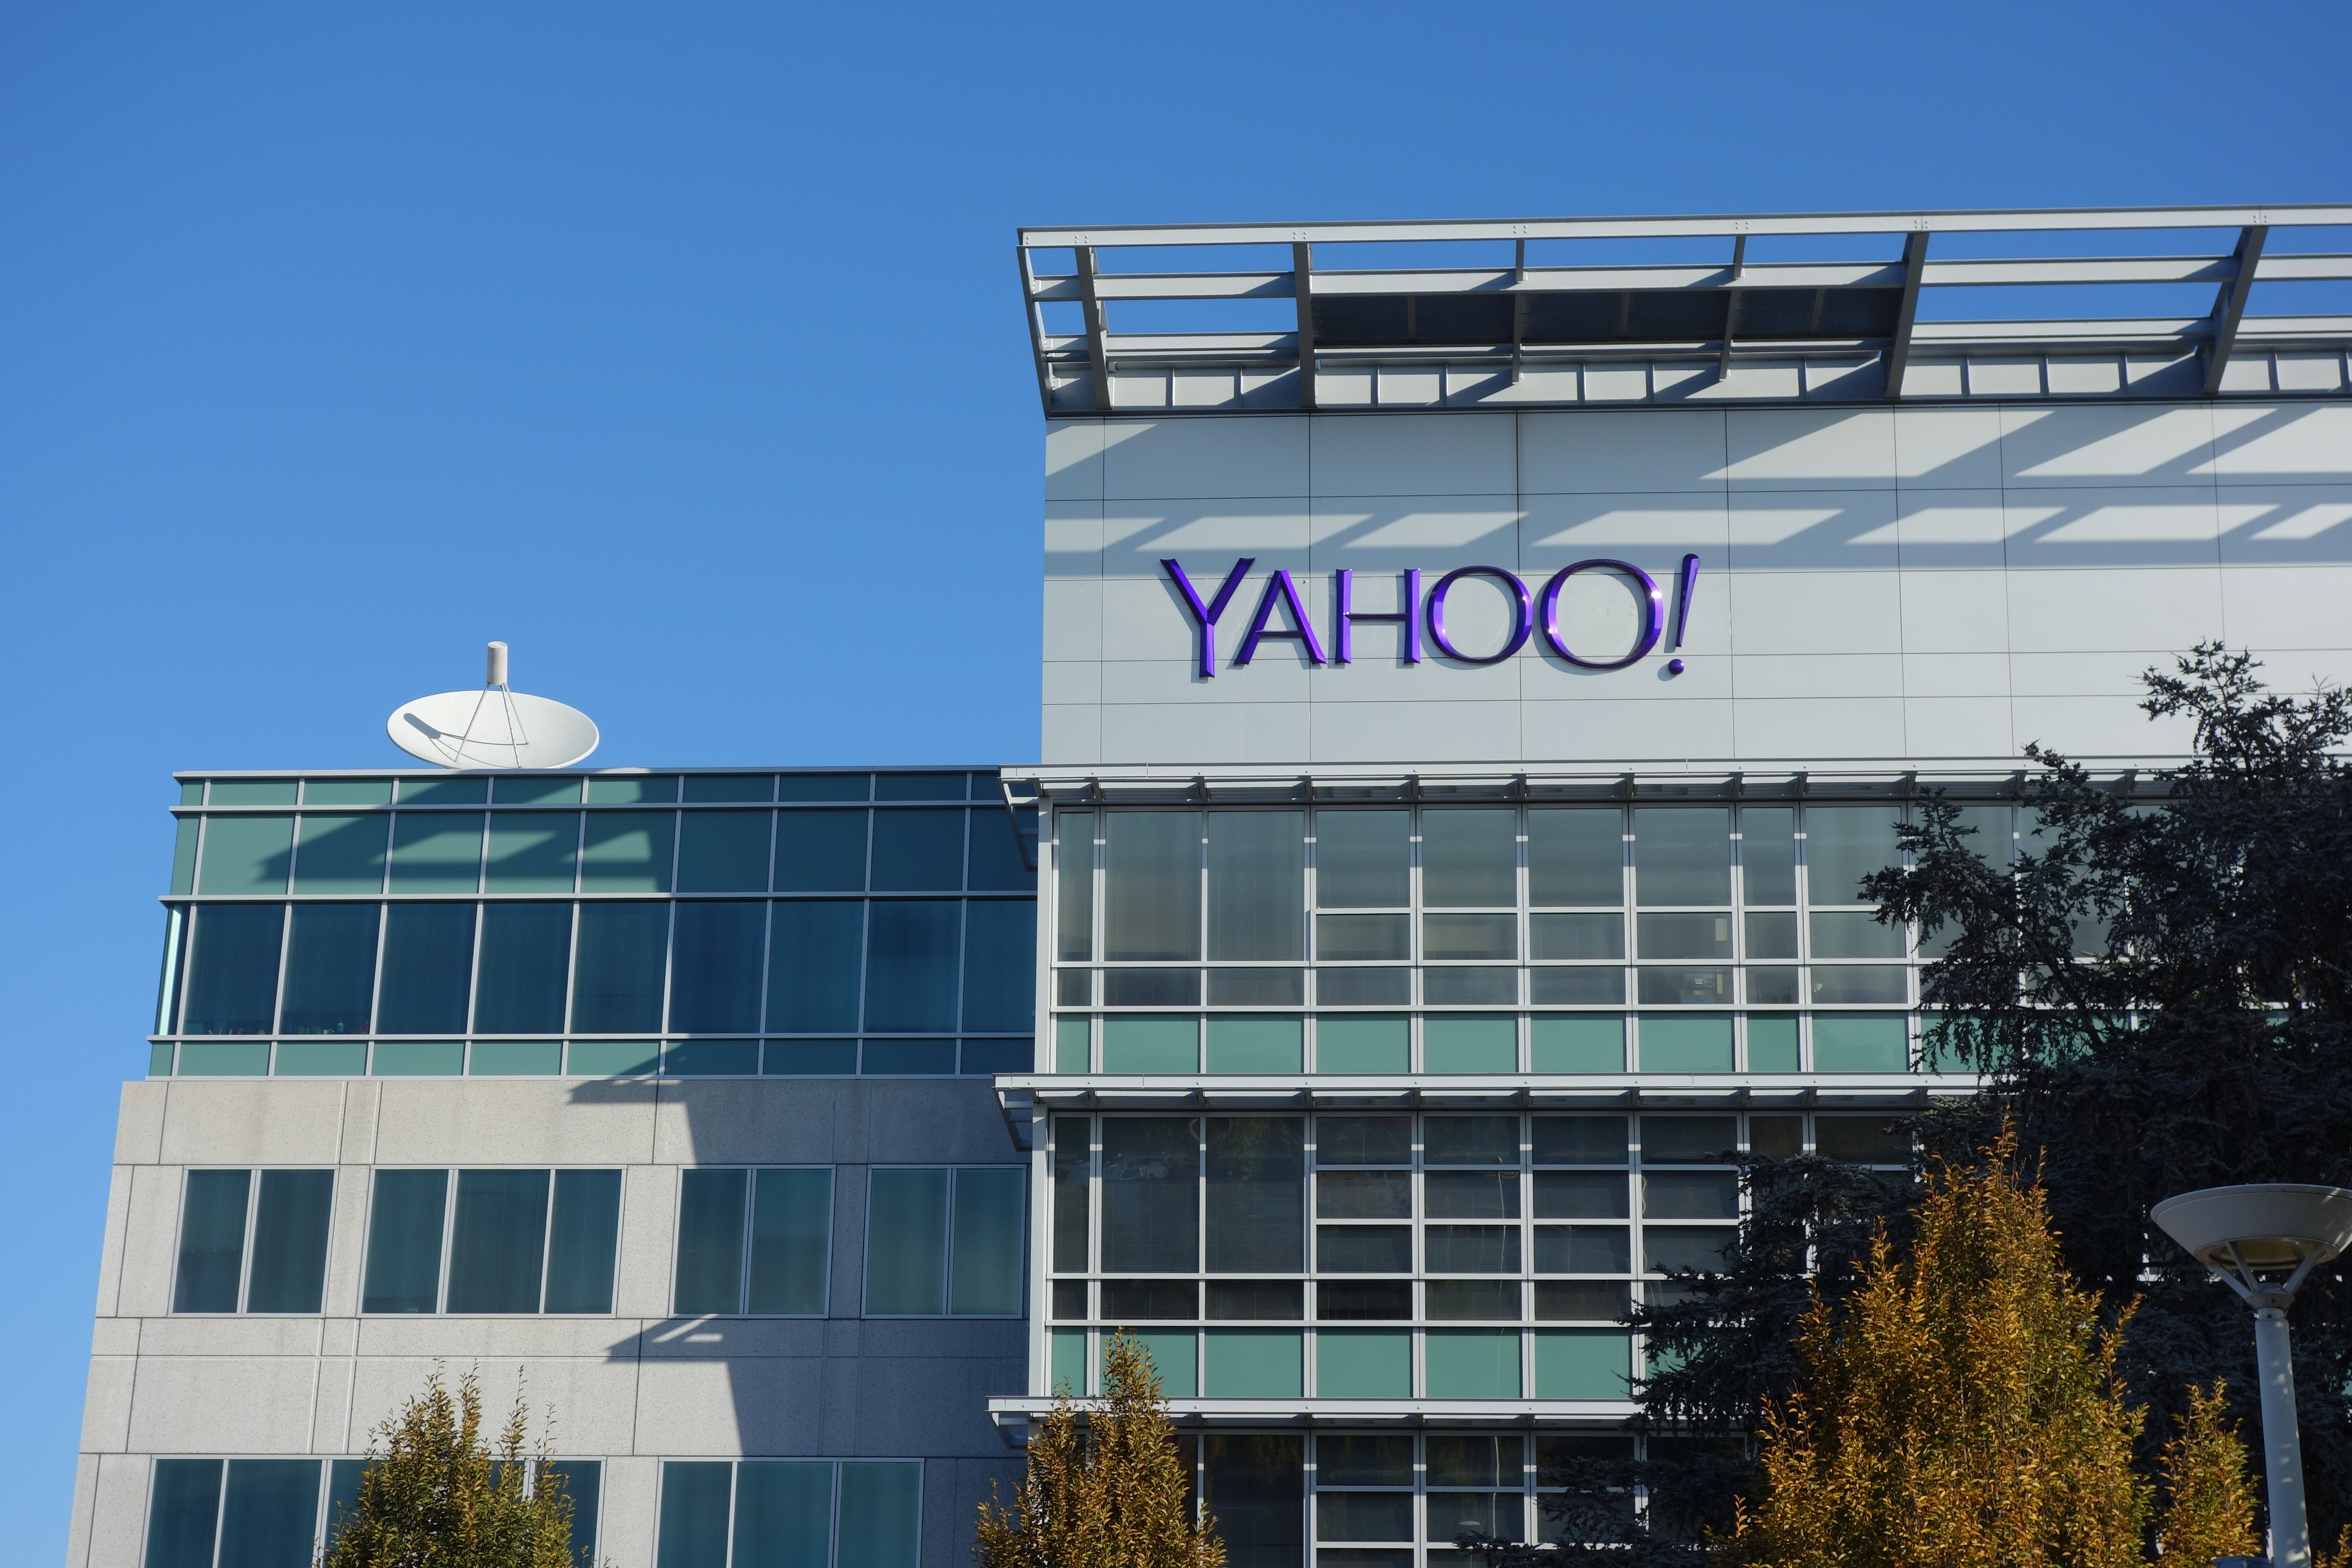 Yahoo! corporate offices and headquarters in Sunnyvale, Calif.